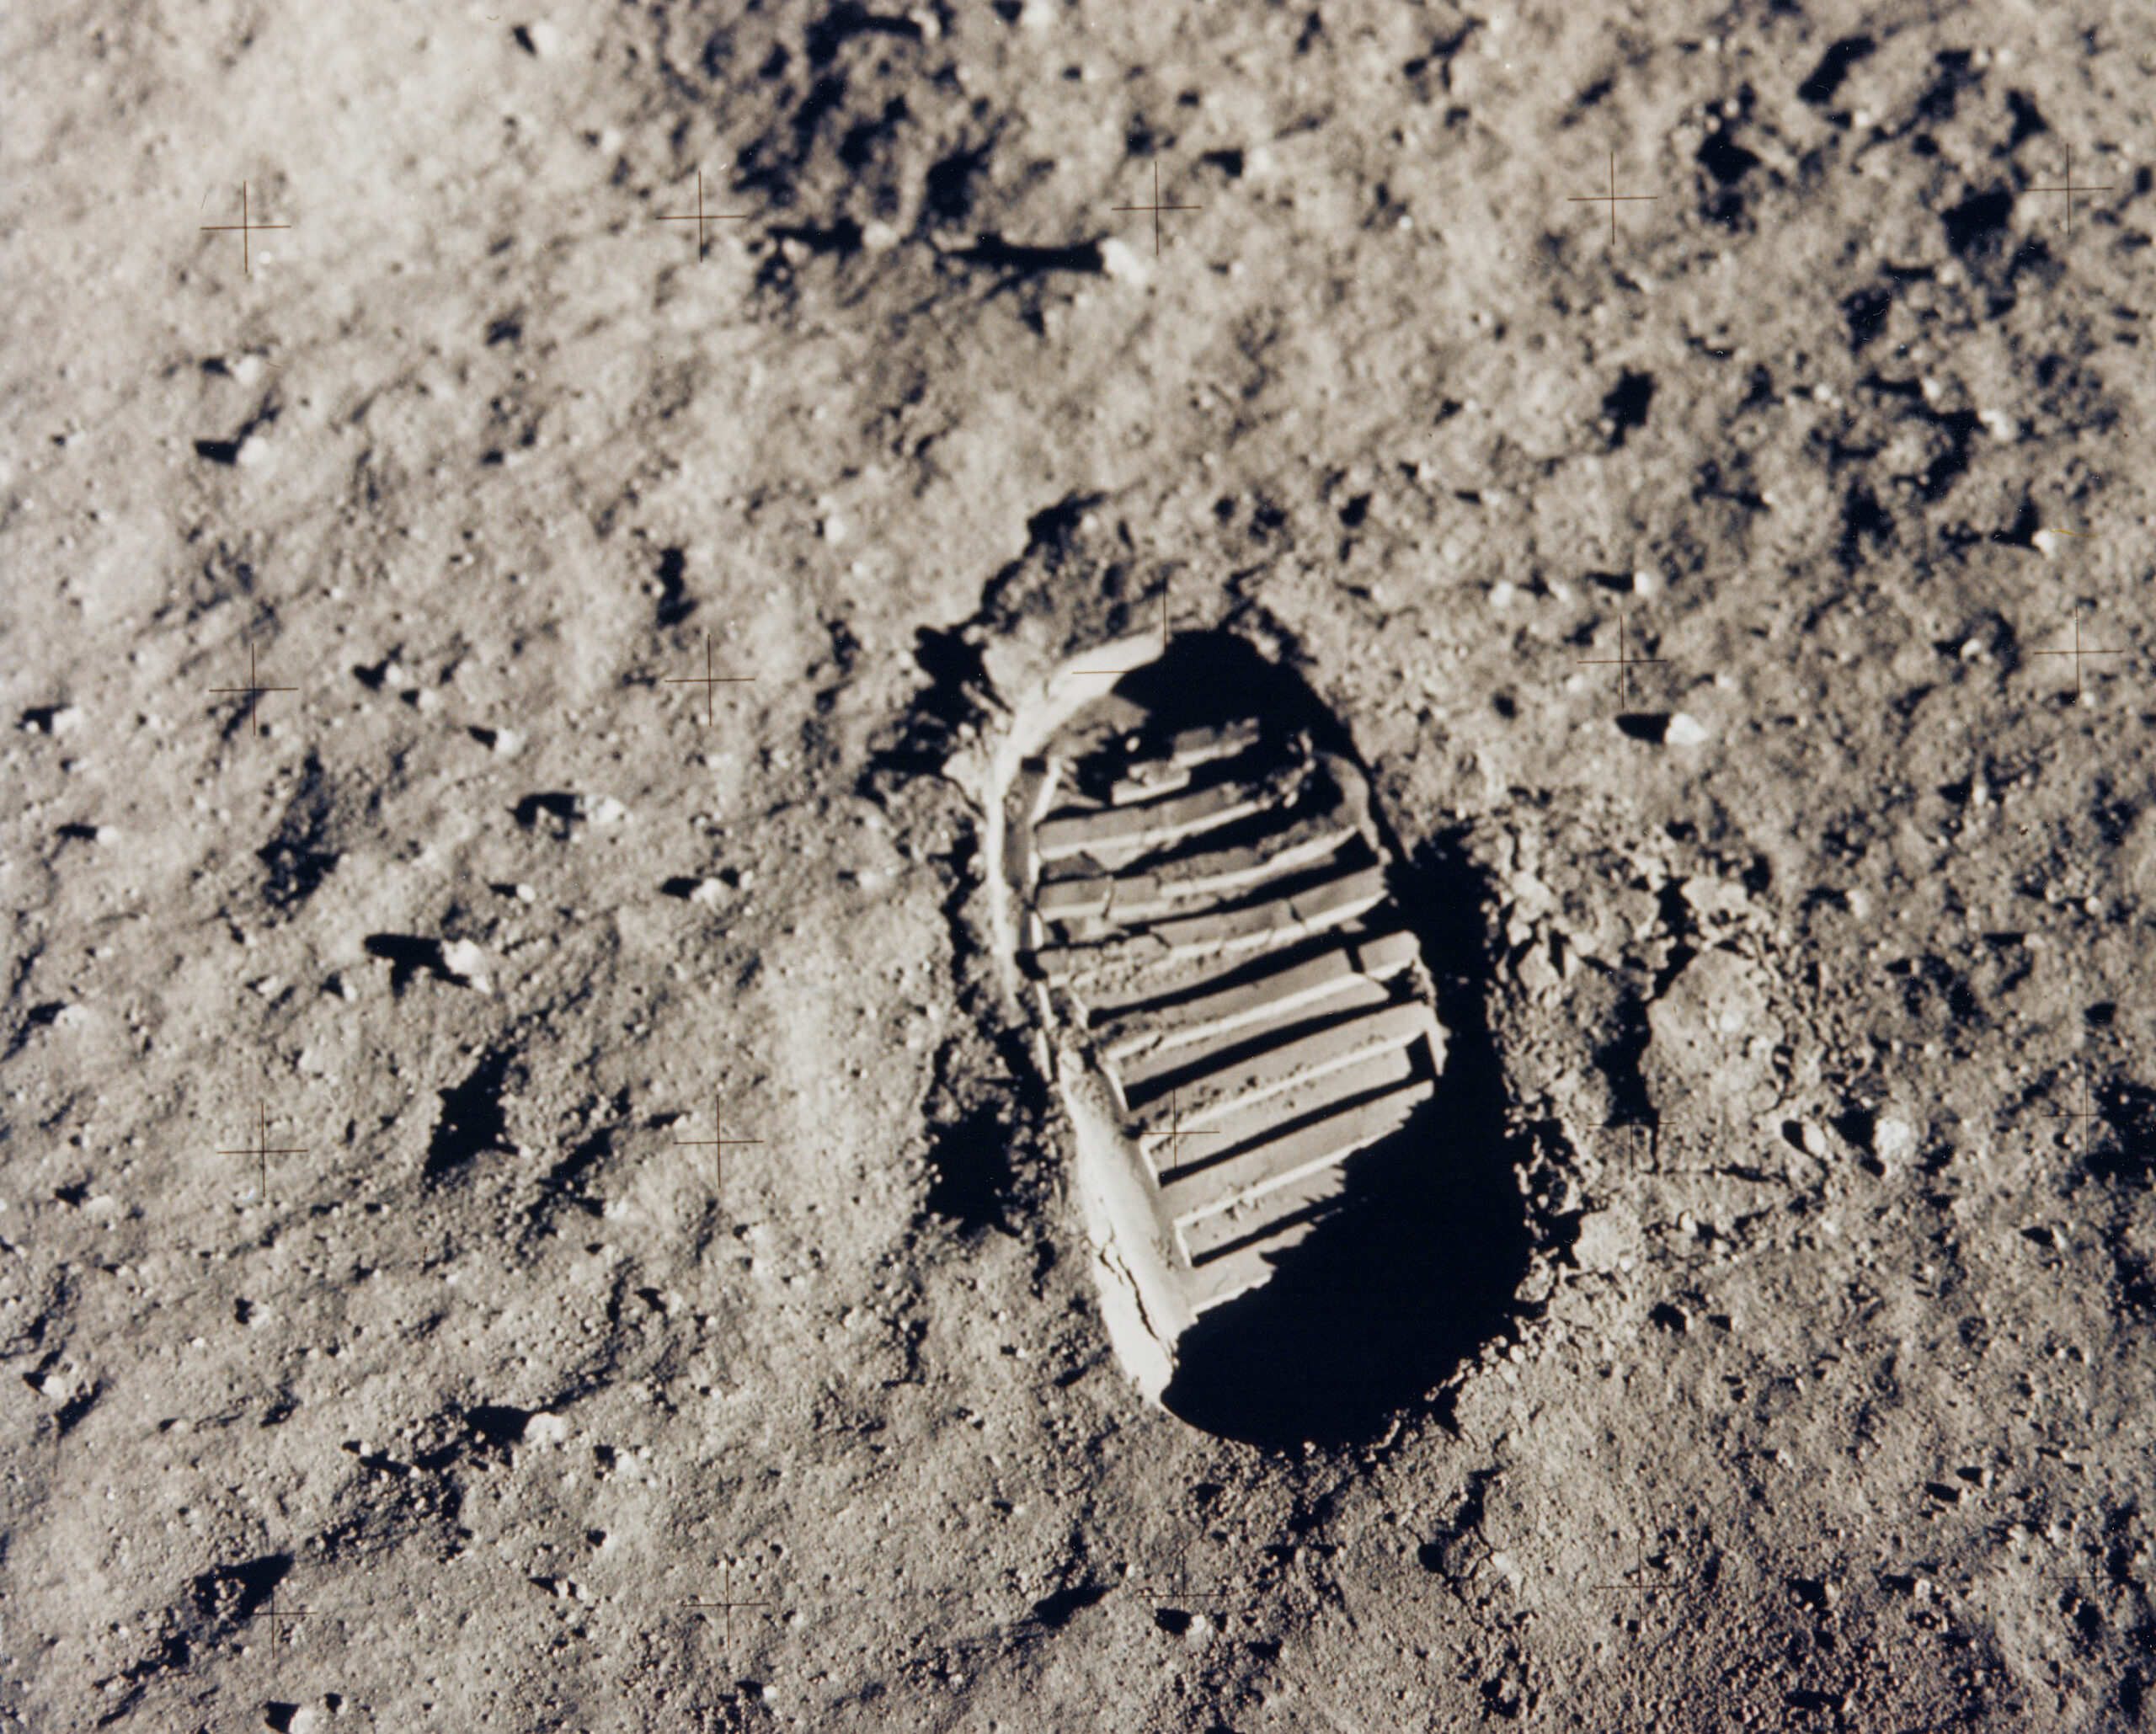 Buzz Aldrin's bootprint on the surface of the Moon after the Apollo 11 historic first Moon landing